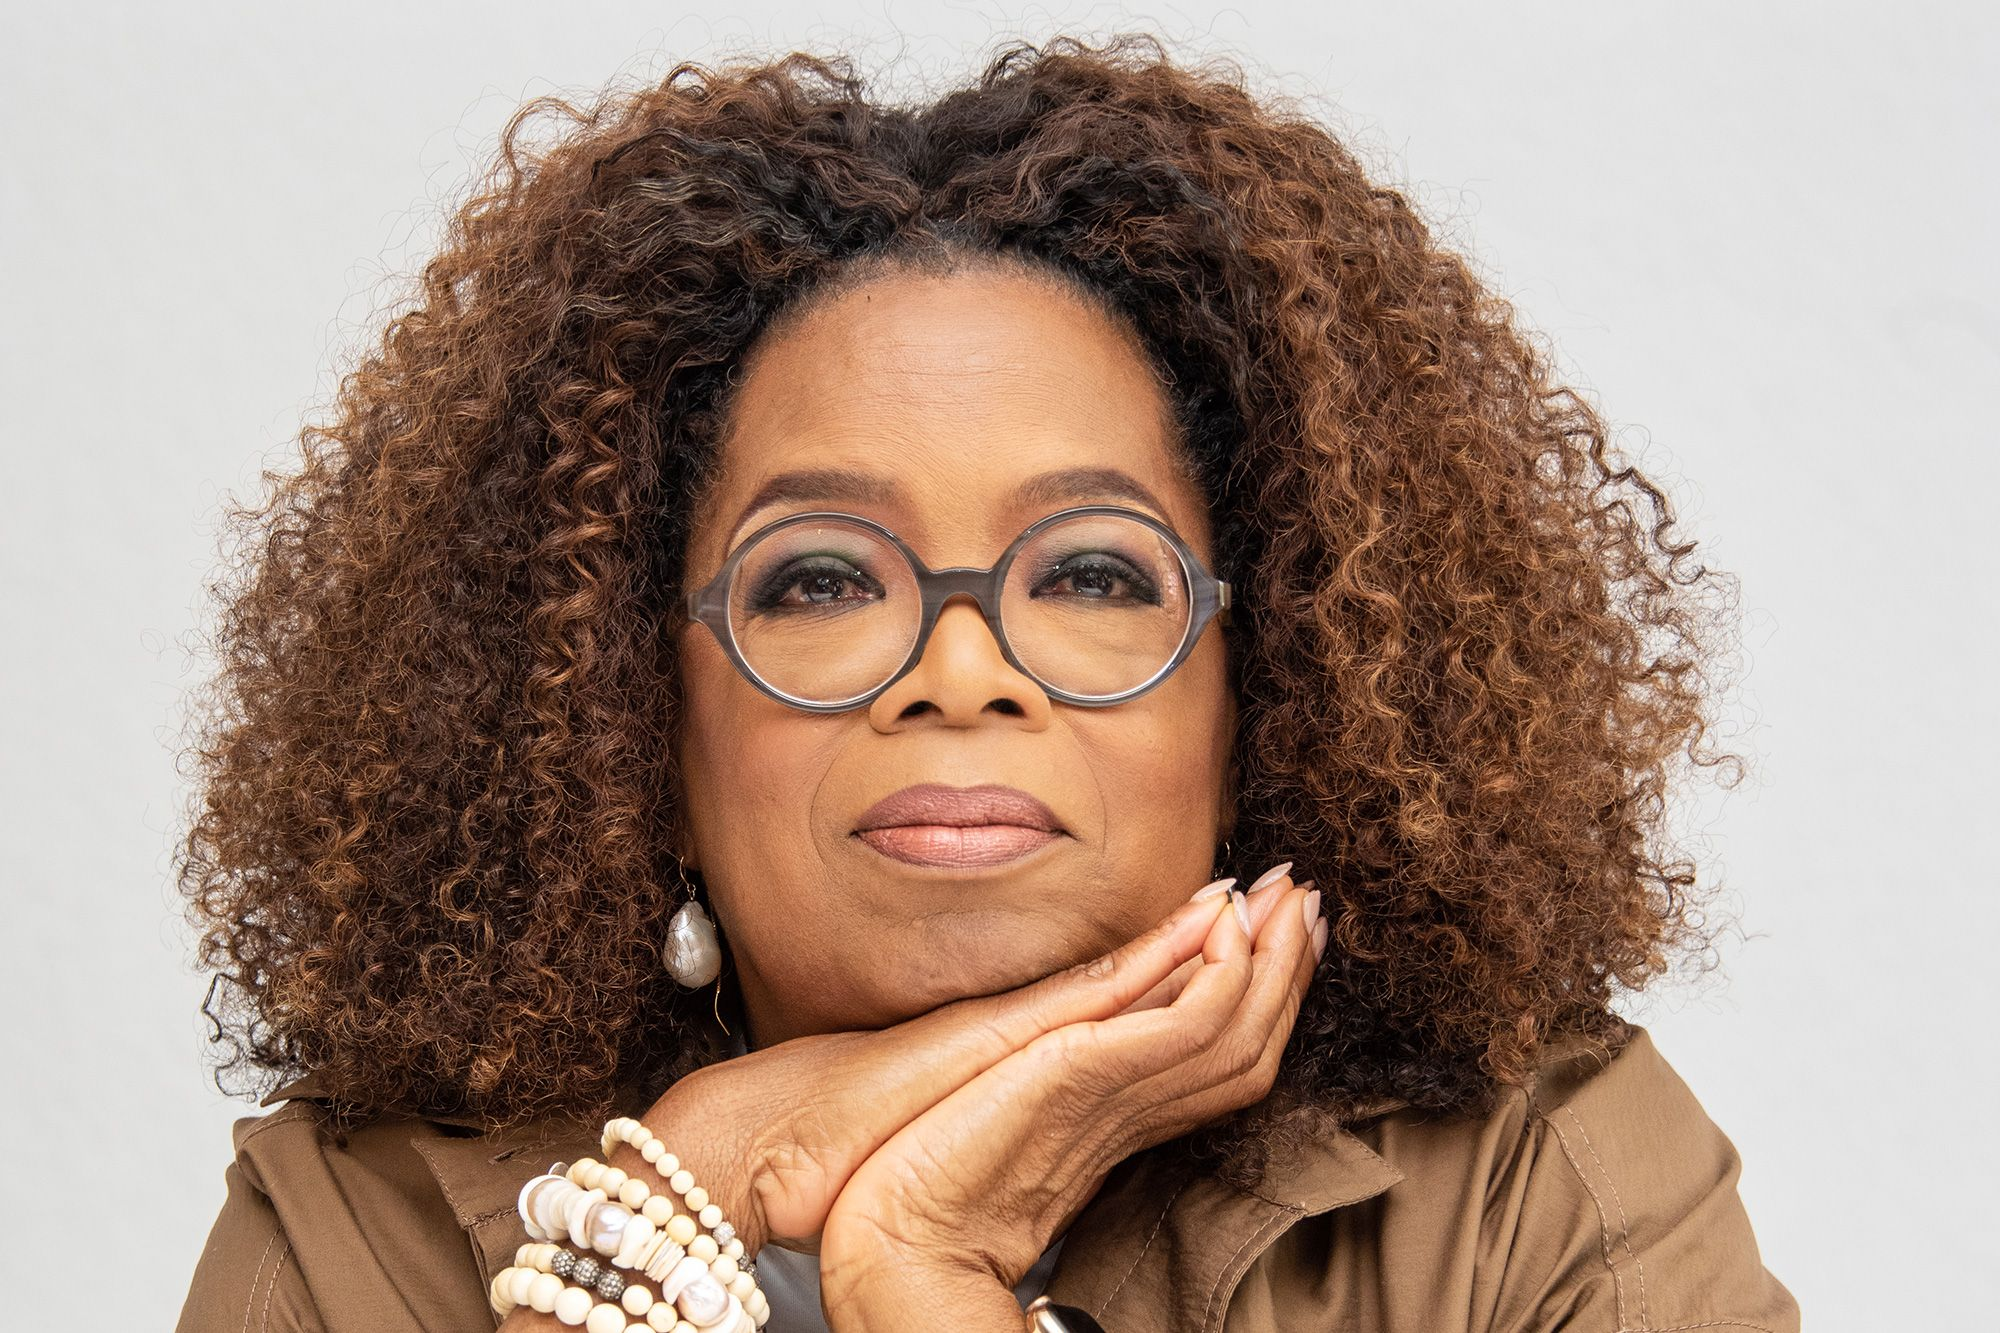 Oprah Winfrey Gives Up Her Magazine Cover For The First Time Ever To Honor Breonna Taylor In 2020 Oprah Winfrey Oprah Oprahs Book Club